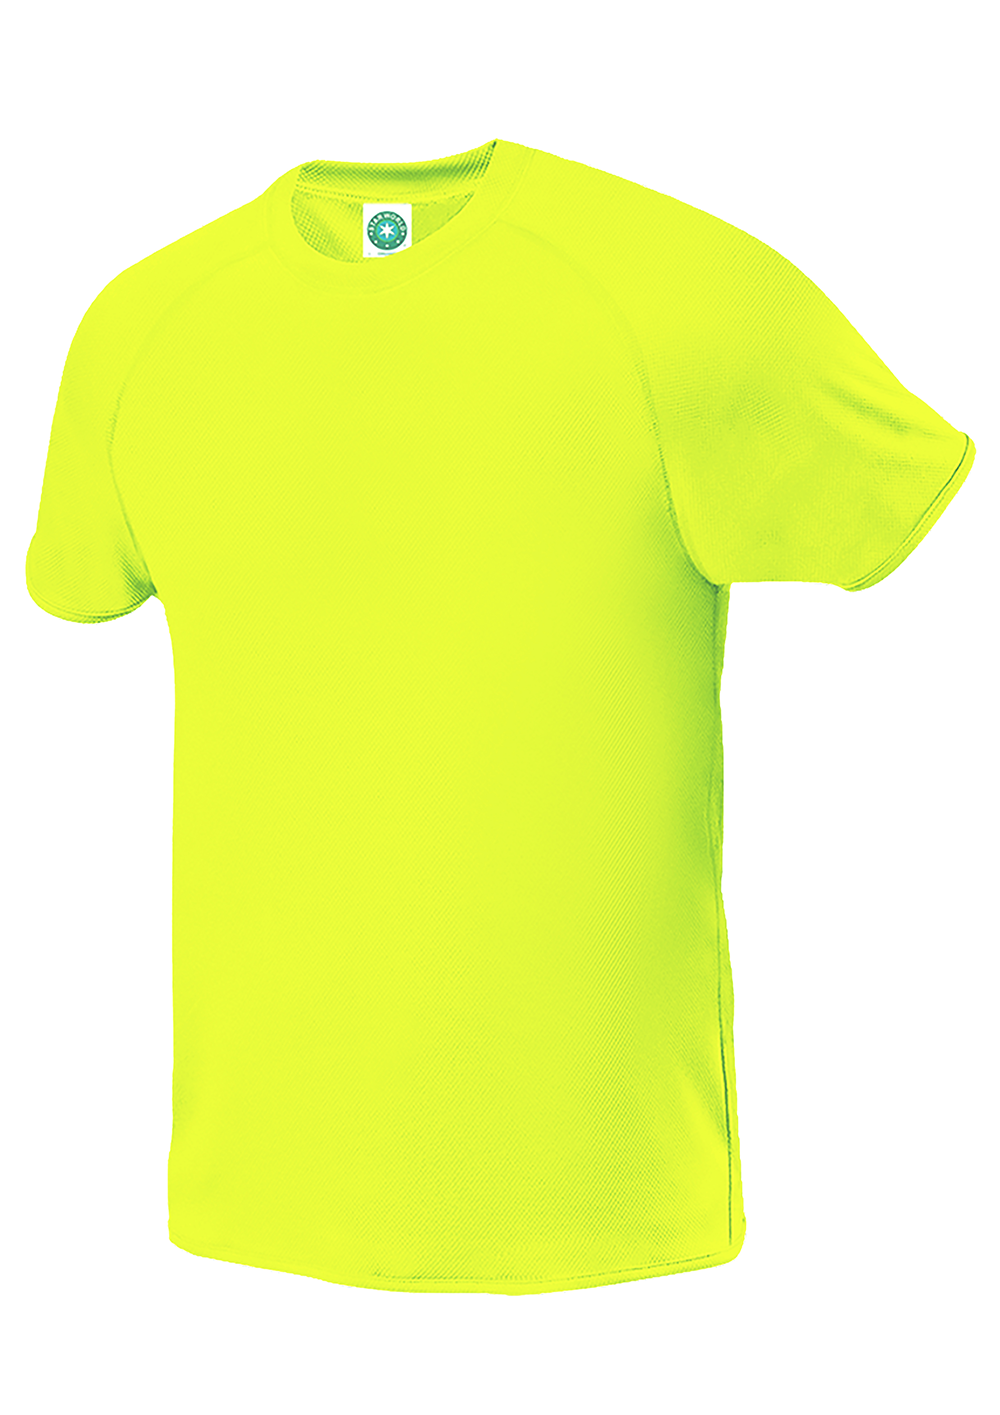 SW300-64-FlYellow.png